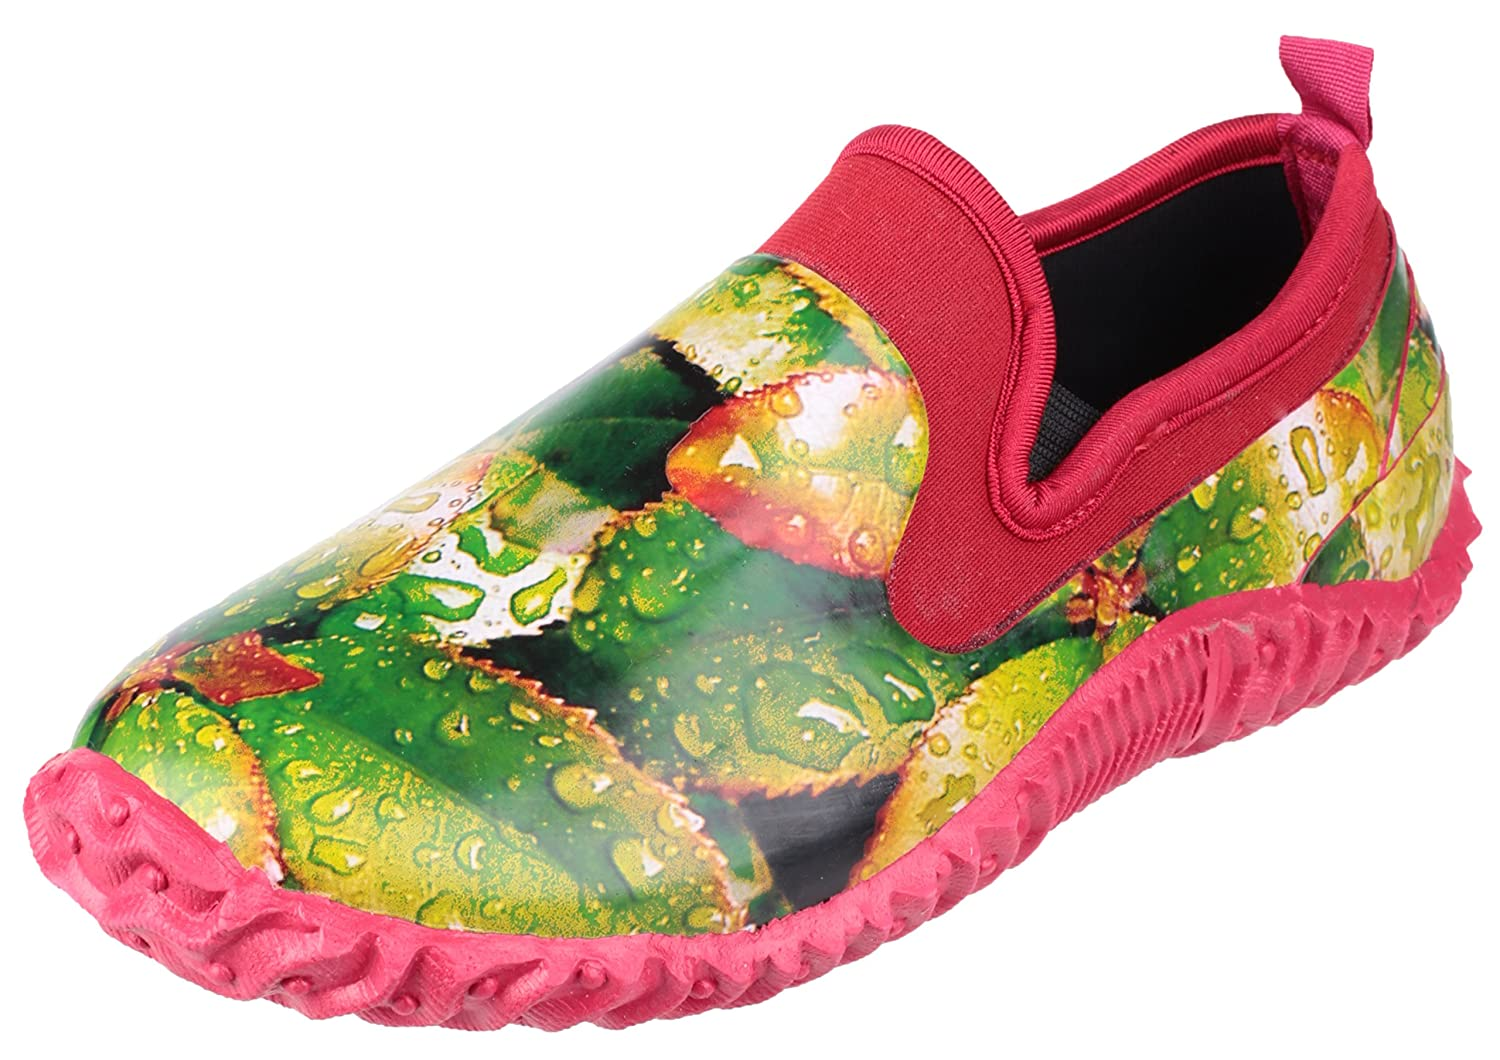 Cotswold girls Cotswold Ladies Backdoor High Def Print Waterproof Garden Shoe Green Rubber